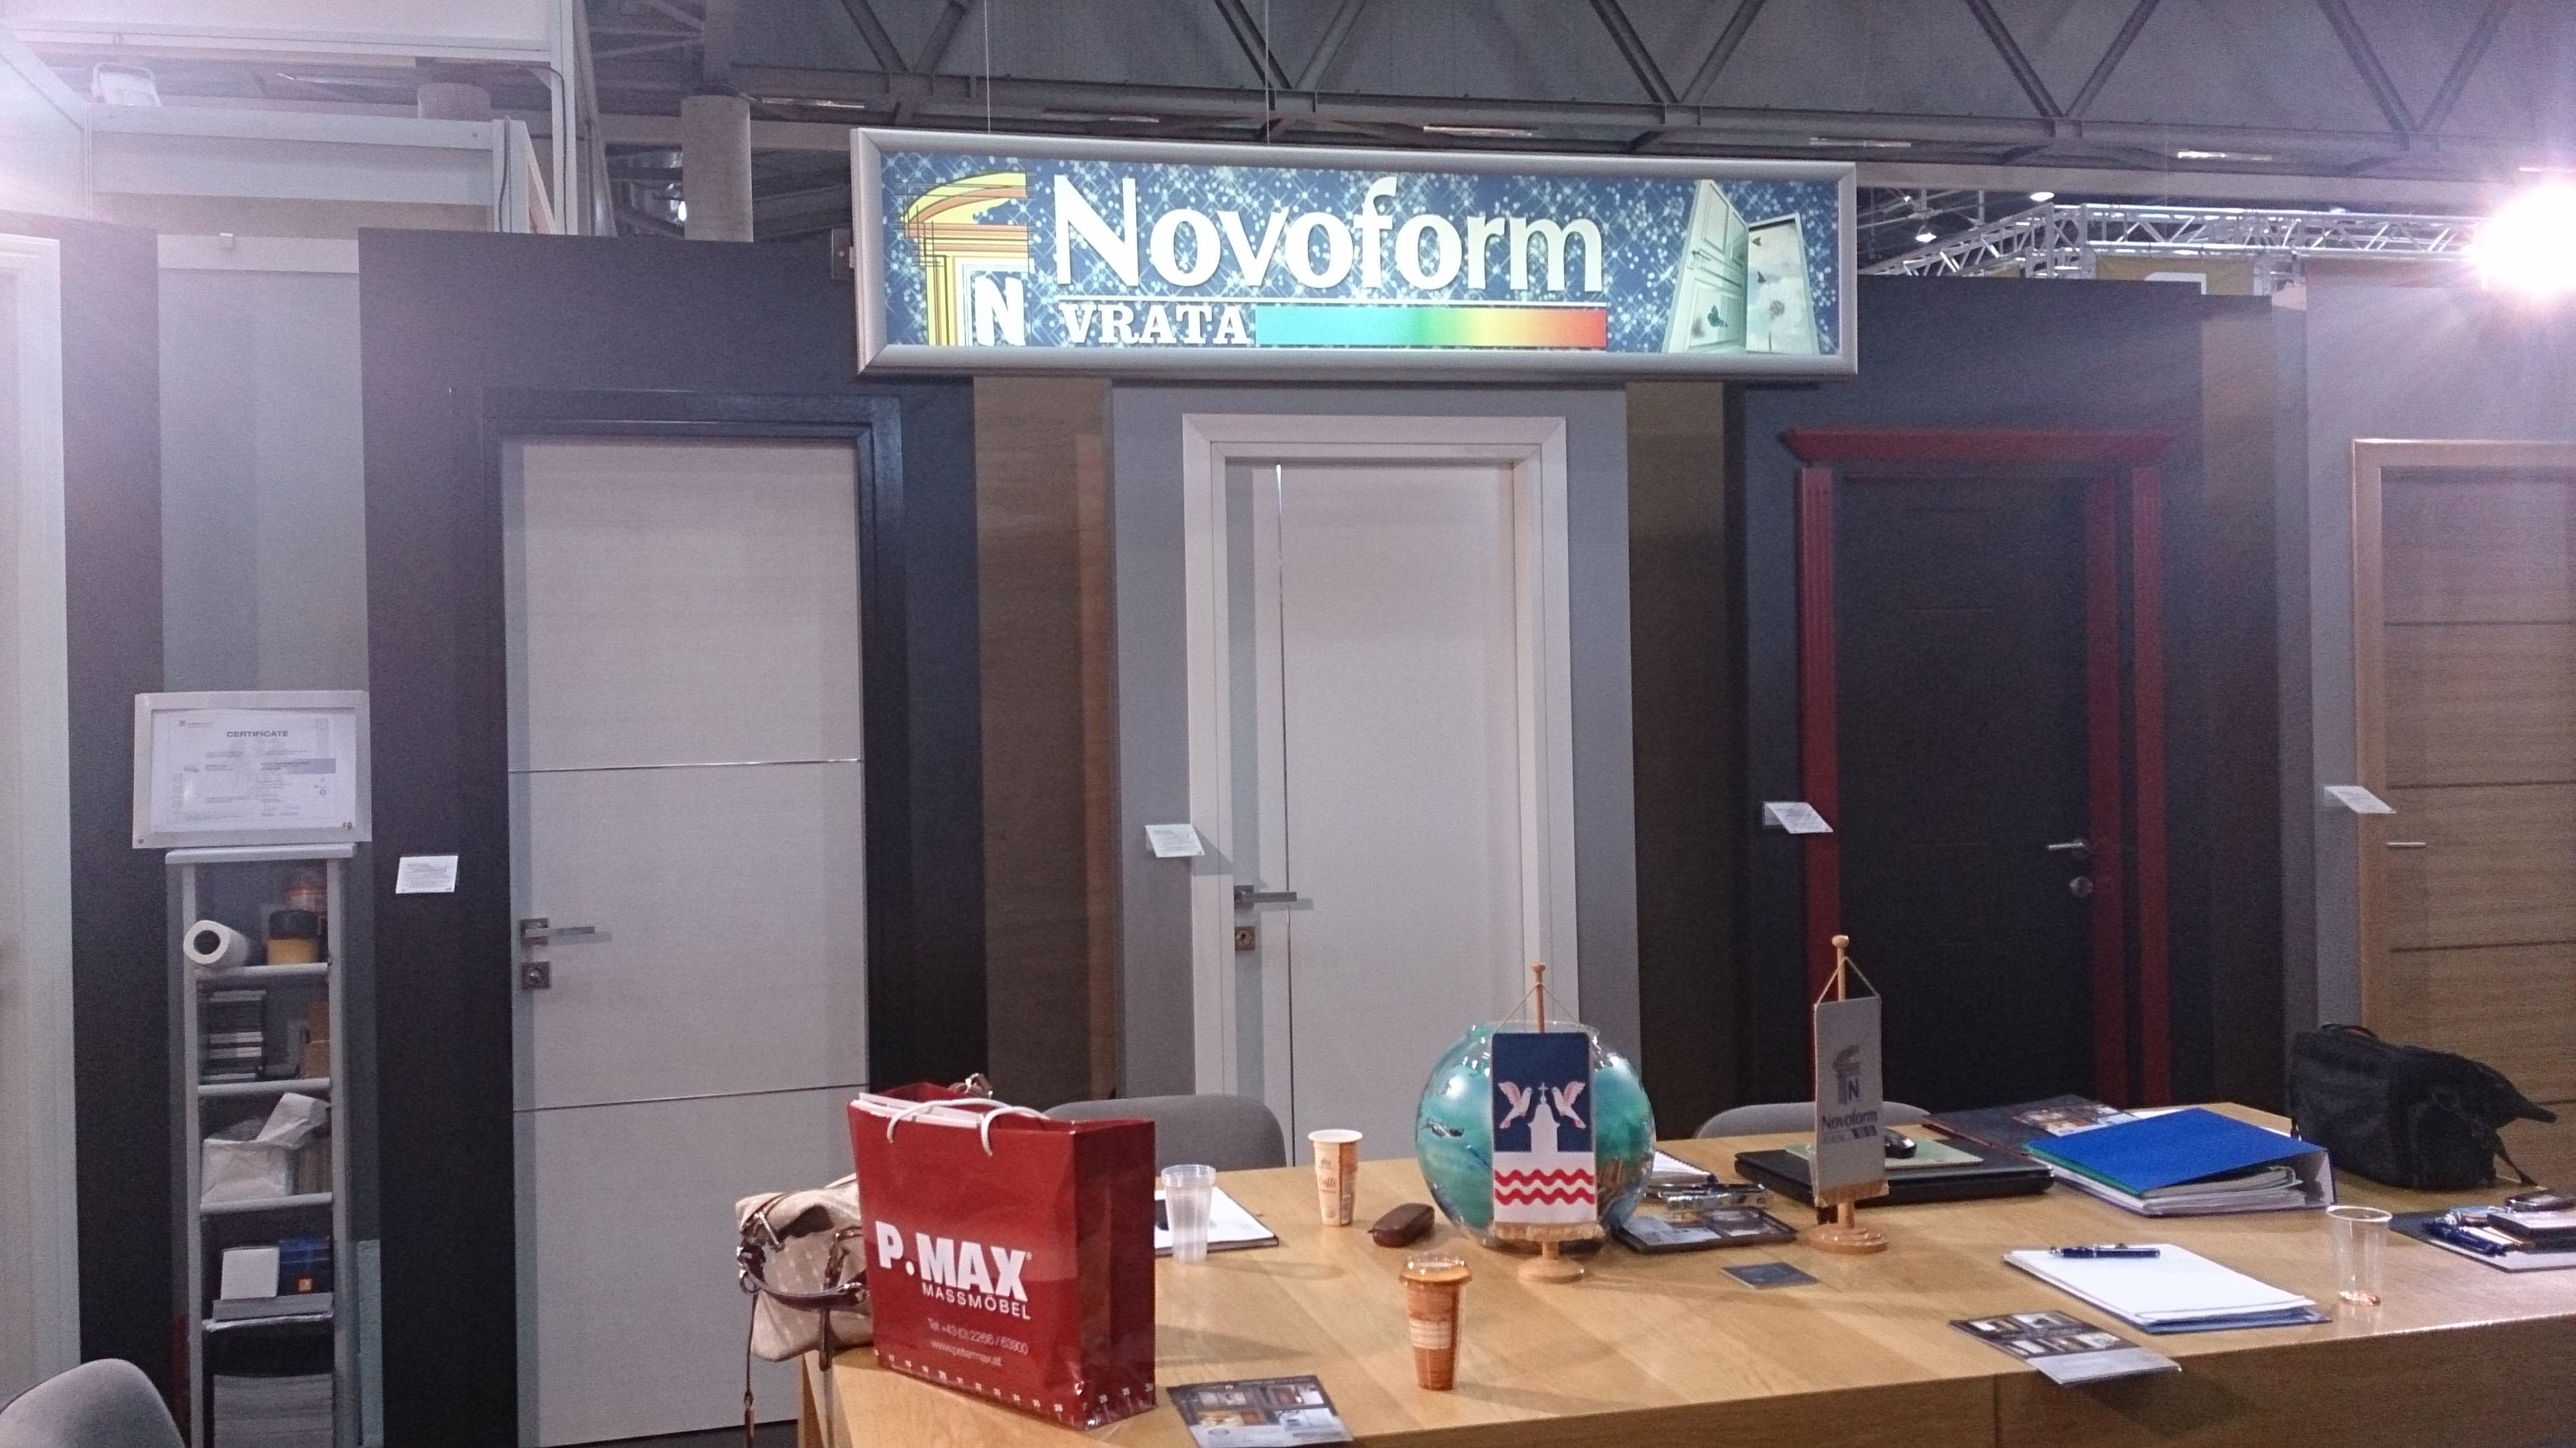 Firma novoform bijeljina an der messe wohnen interieur for Interieur messe